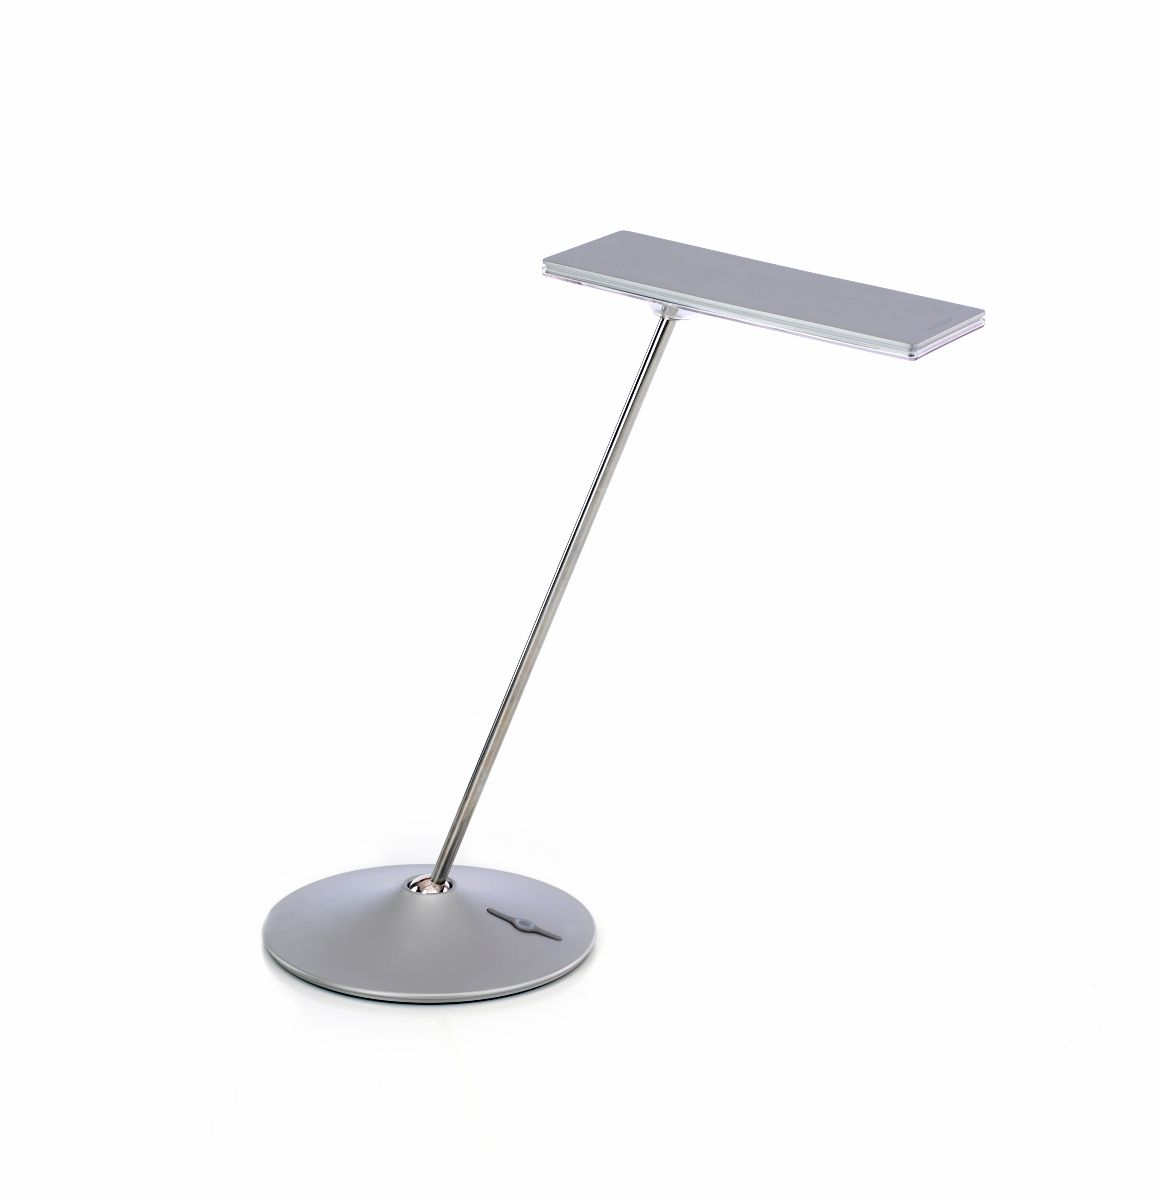 horizon led lighting solutions from humanscale